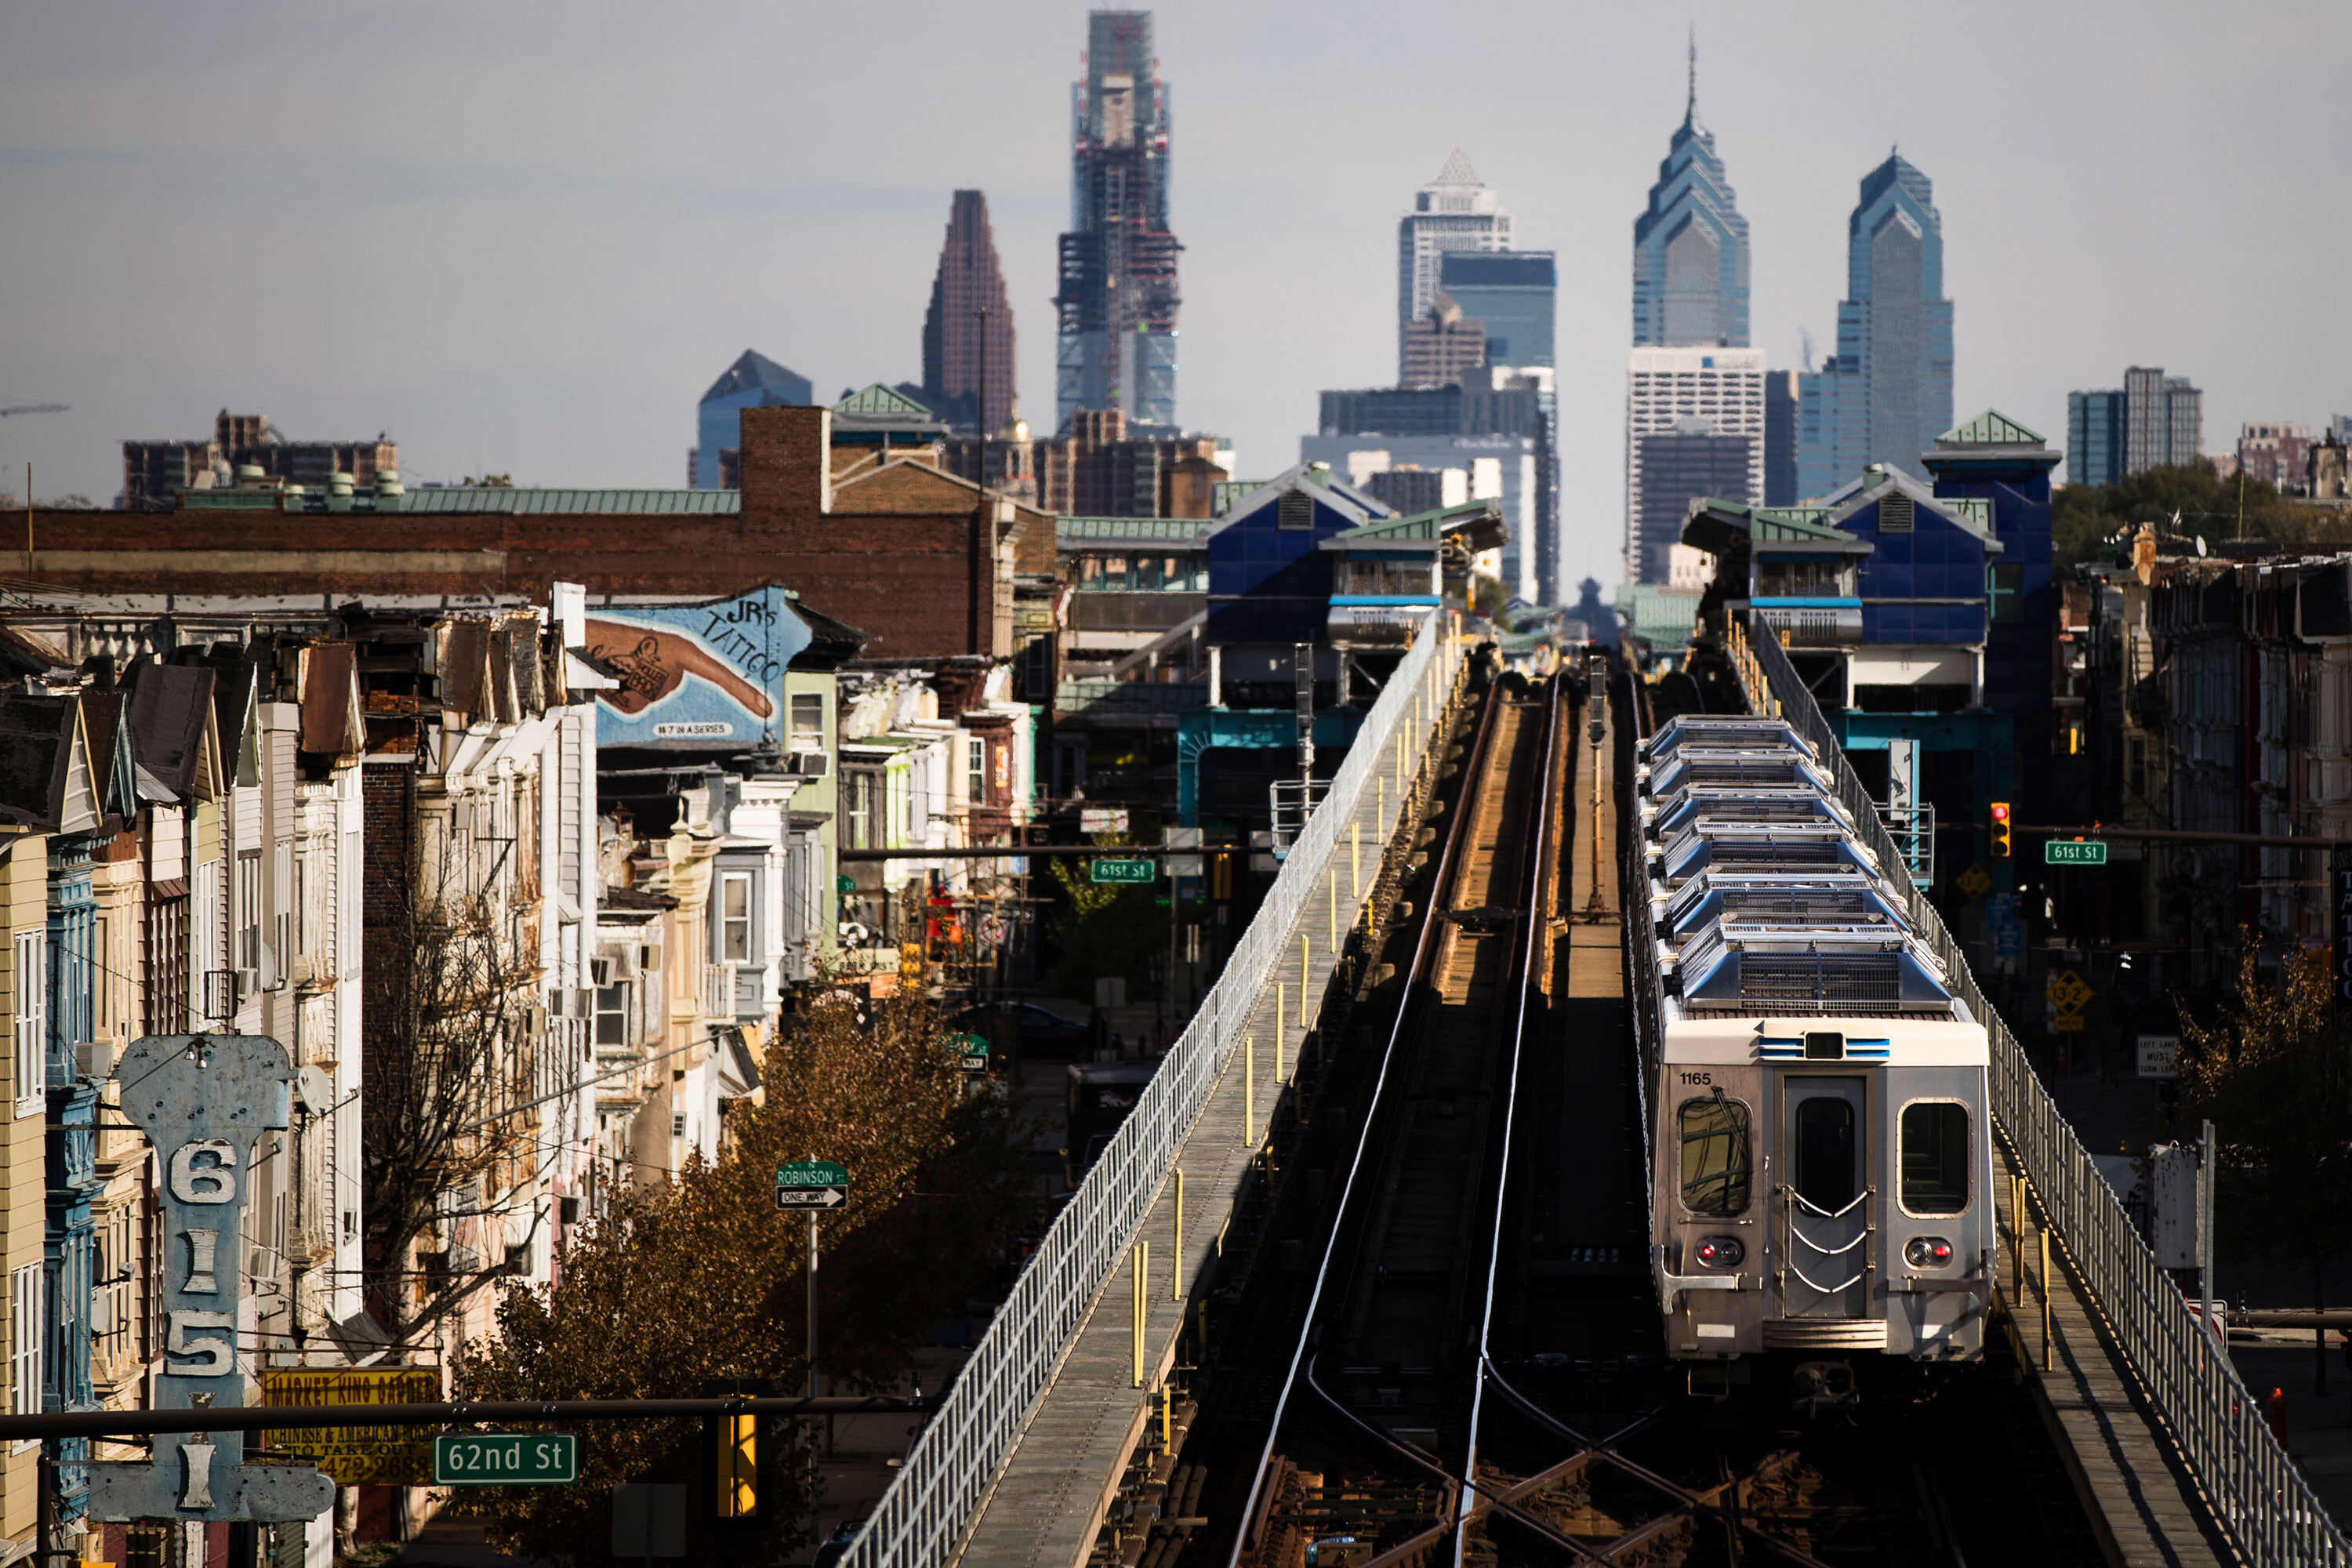 Riders who did not intervene during alleged sexual assault on a SEPTA train won't face charges, prosecutor says